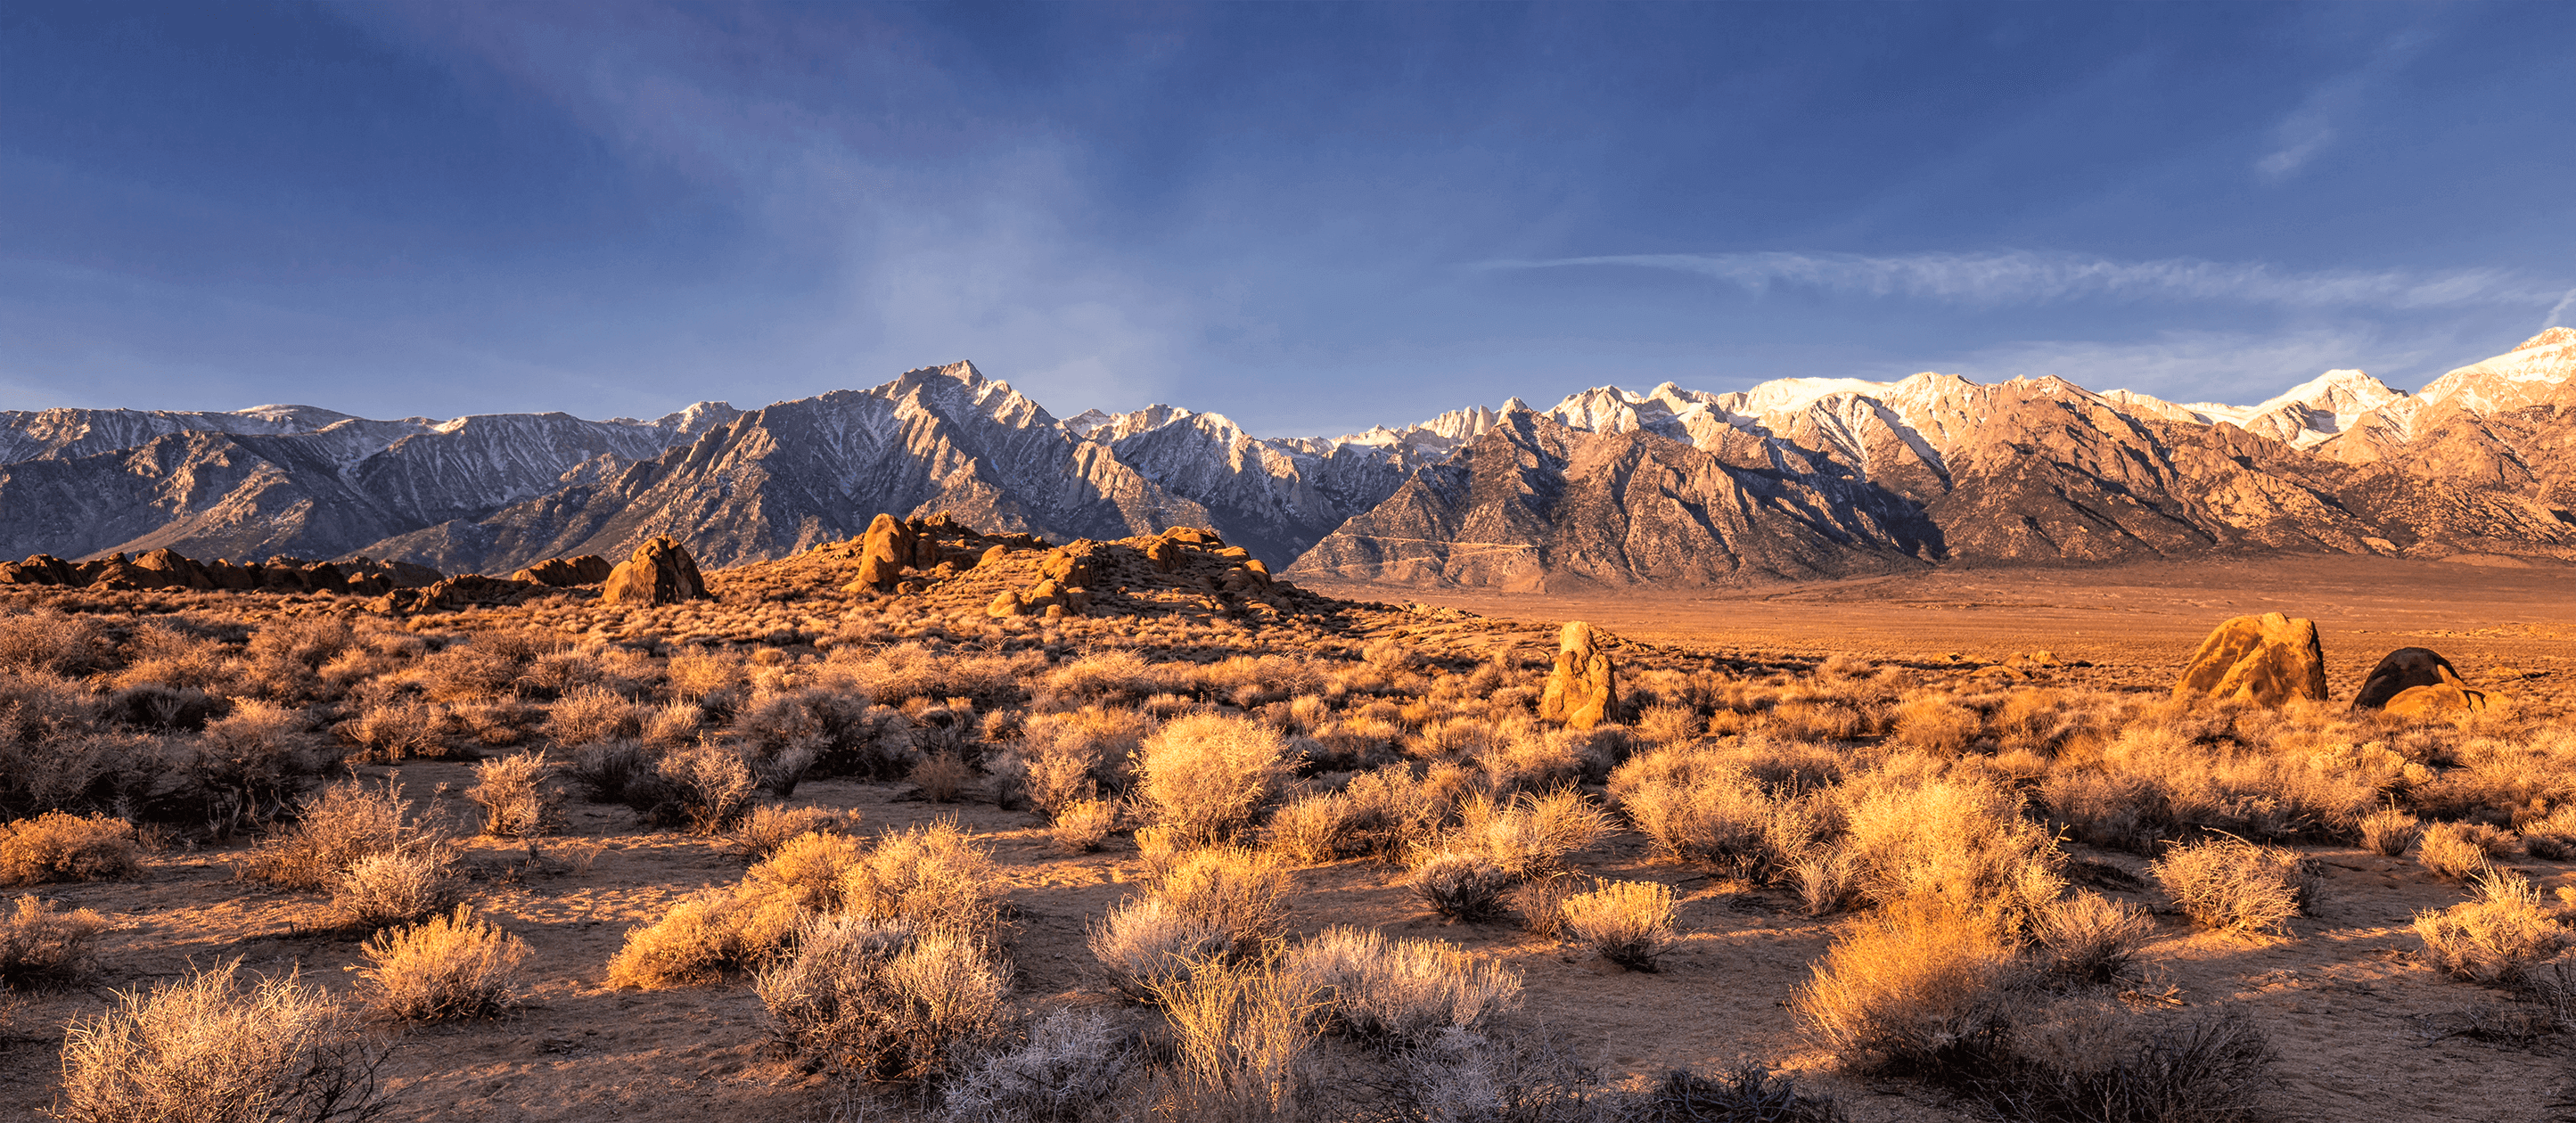 Image of desert with brush in foreground and snow capped mountains on horizon